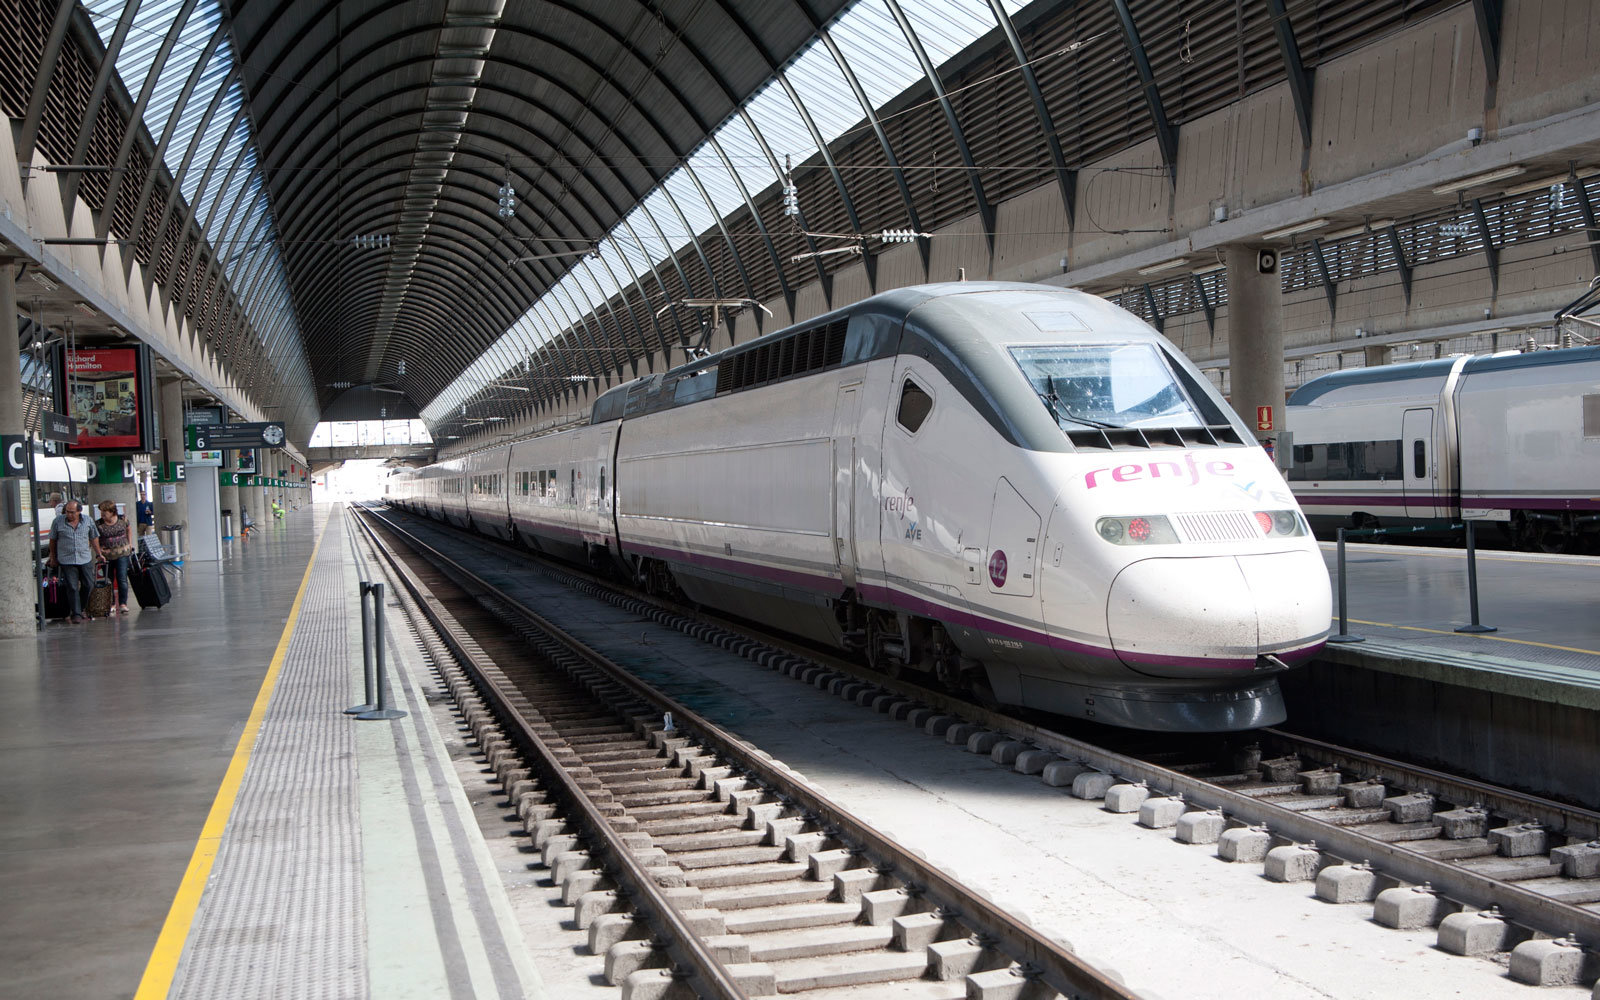 Spain is adding Wi-Fi to high-speed trains.